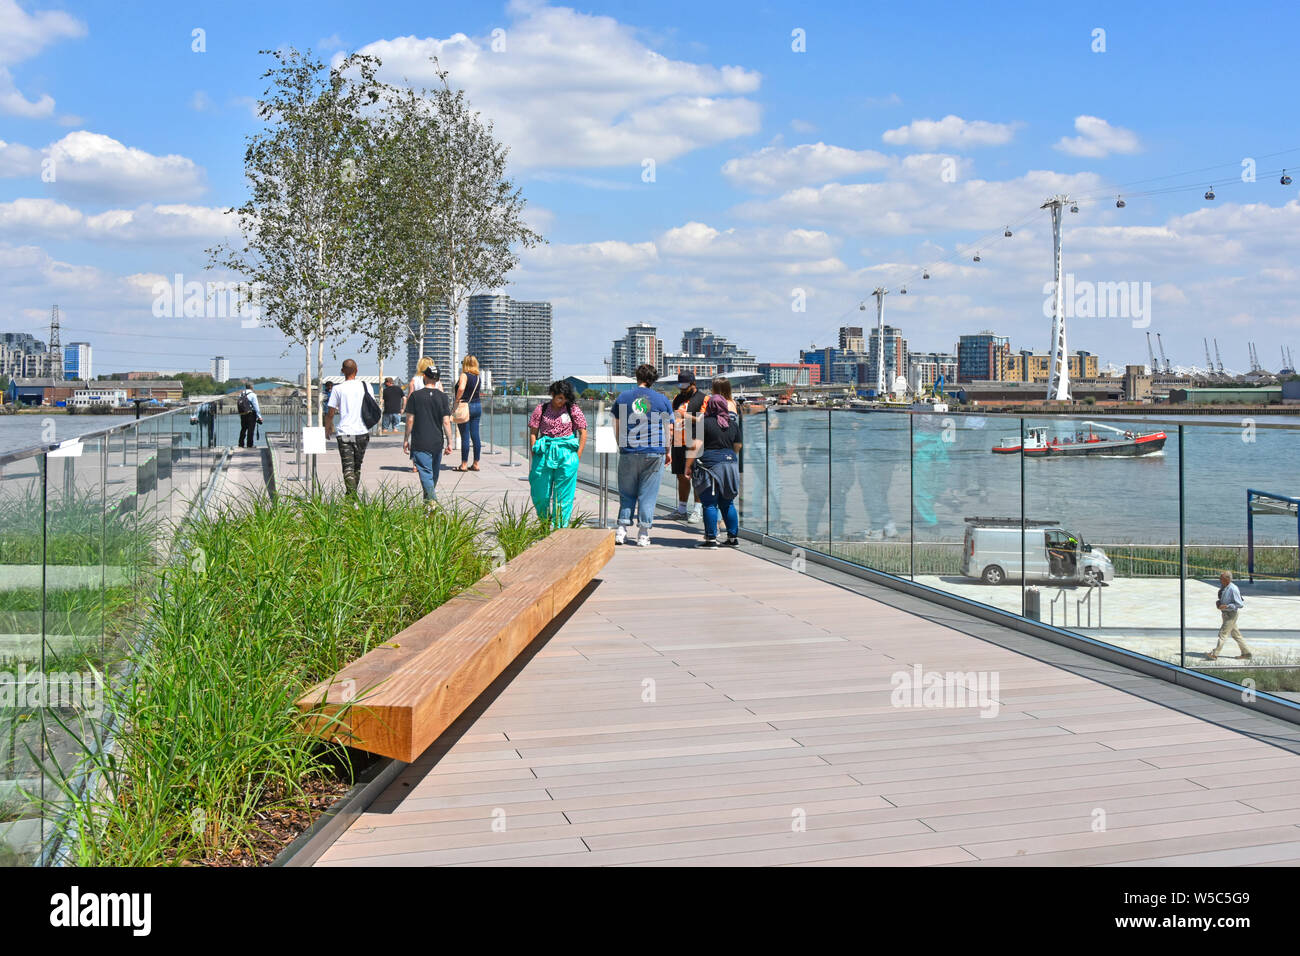 People walking The Tide bridges a linear parks links River Thames riverside with elevated walks around the Greenwich Peninsula South London England UK Stock Photo